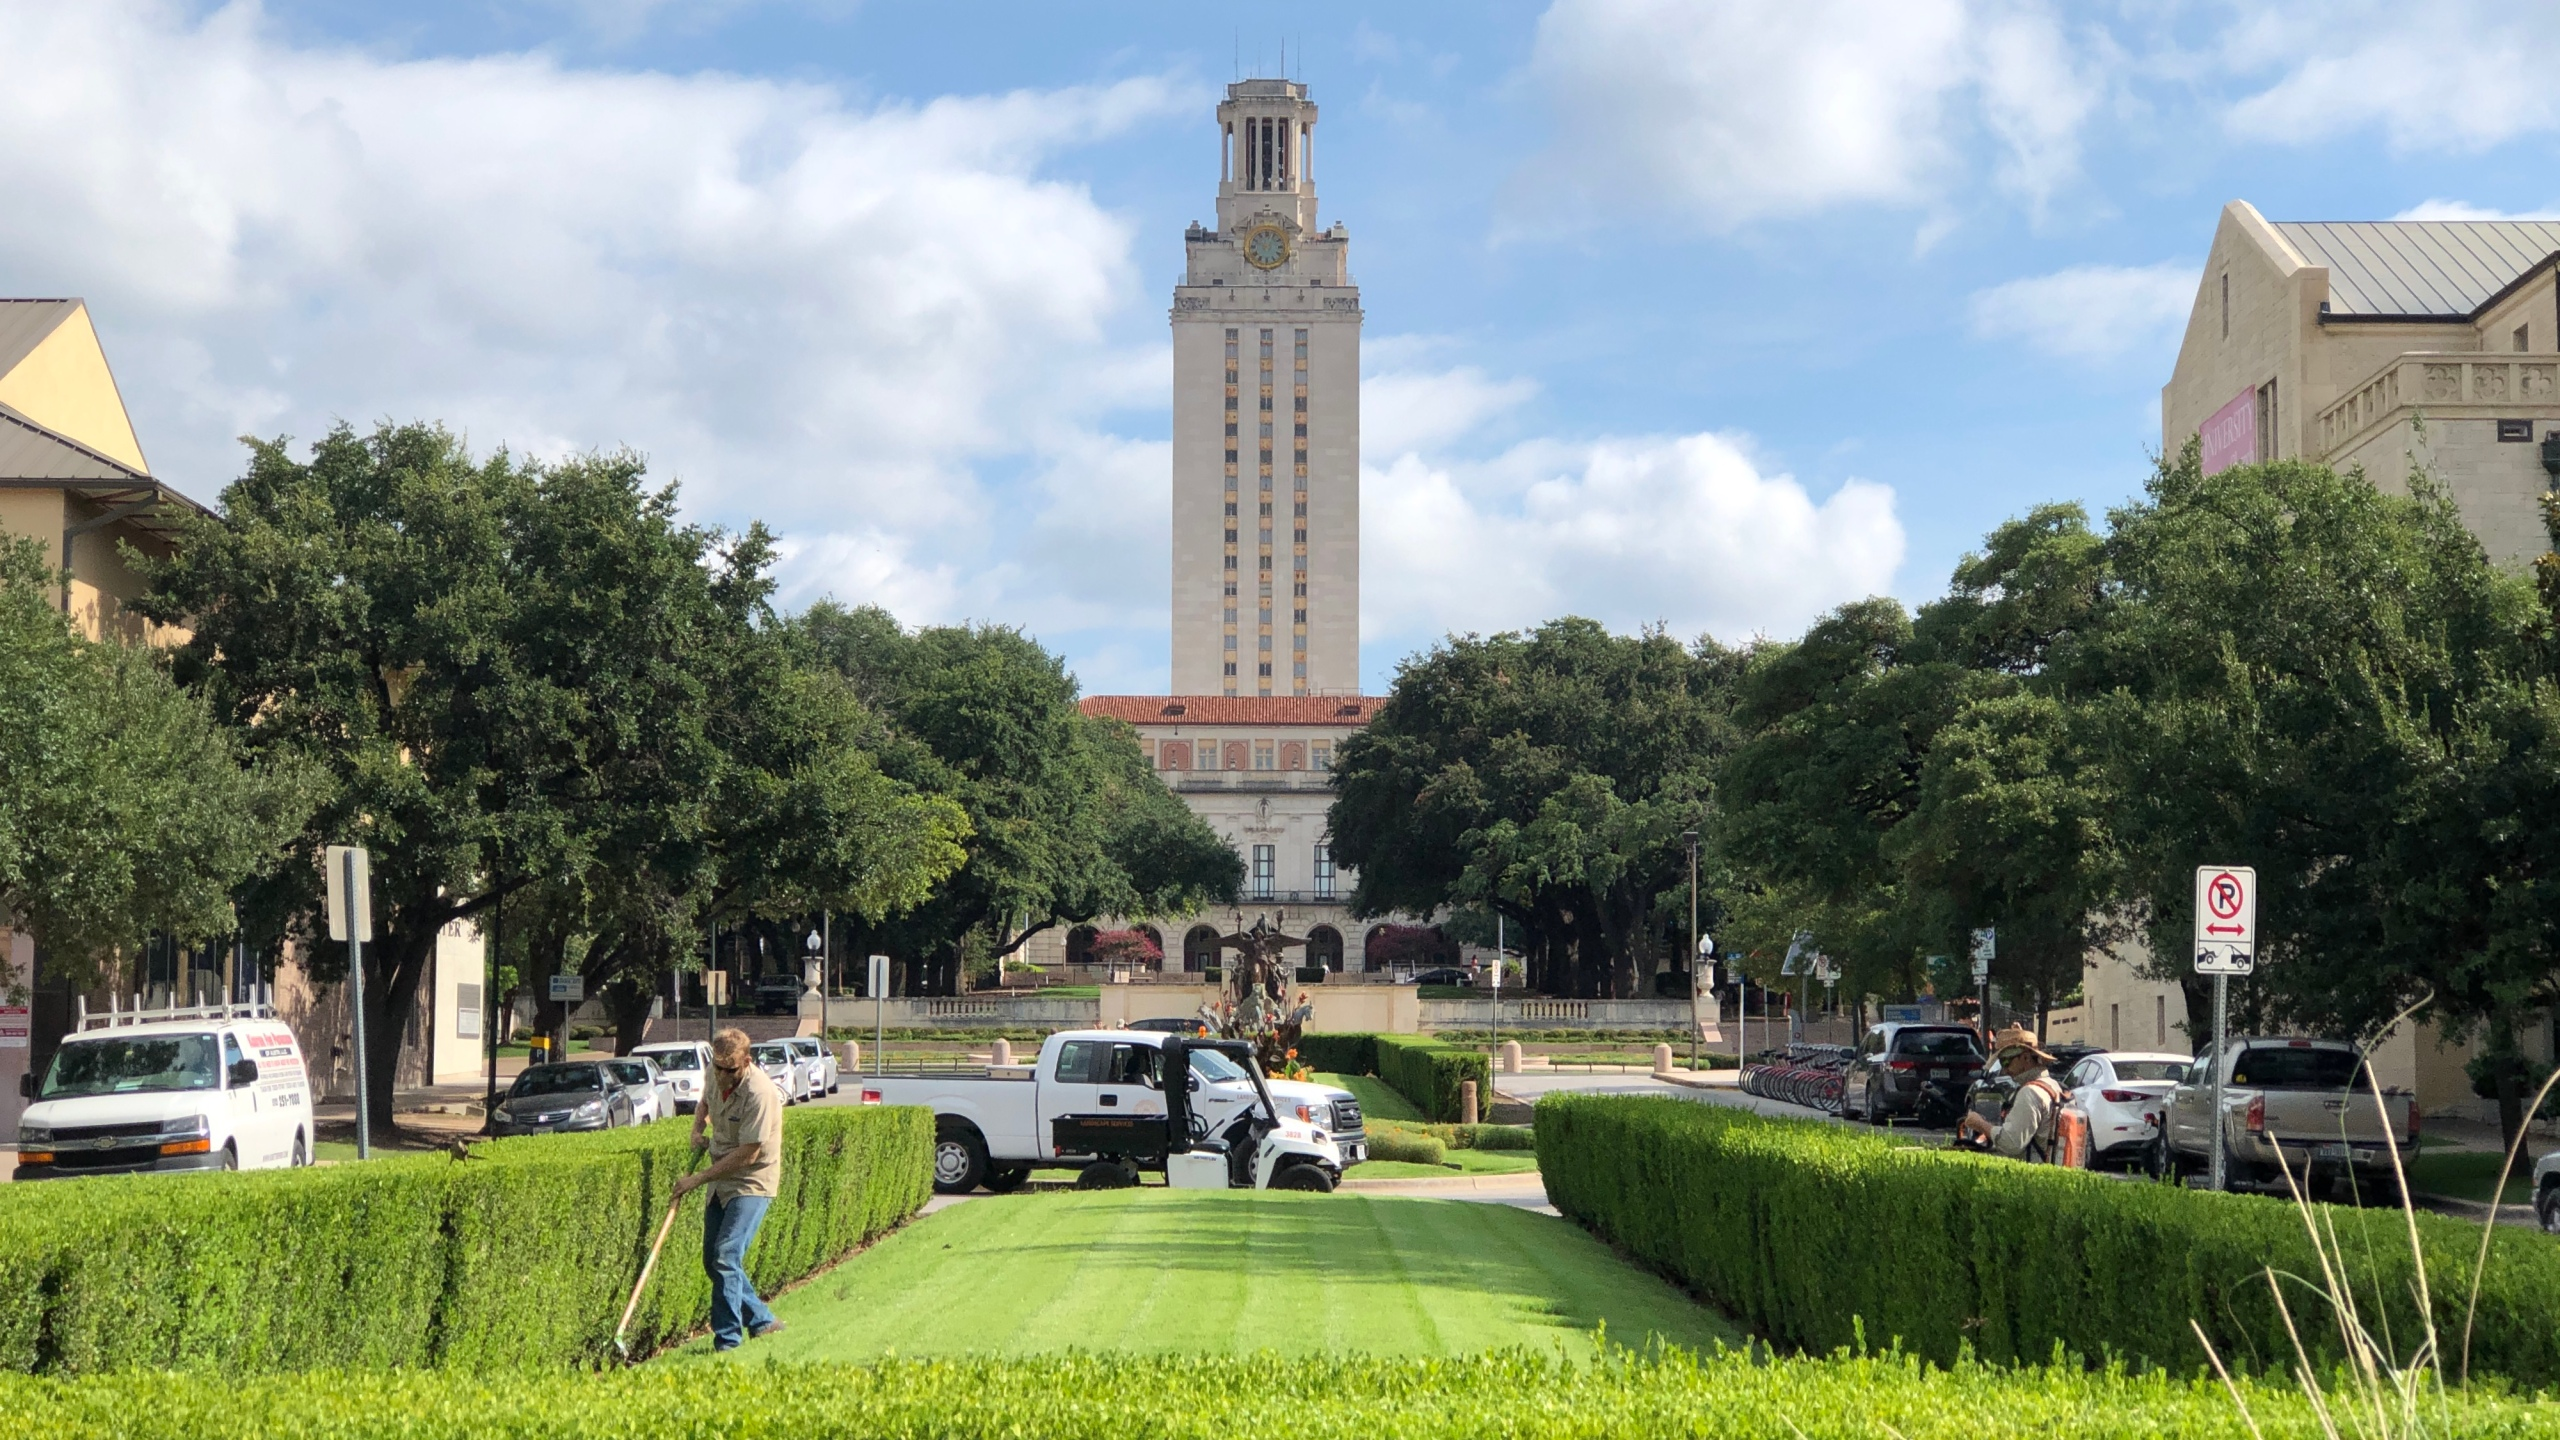 UT Tower on a sunny day.